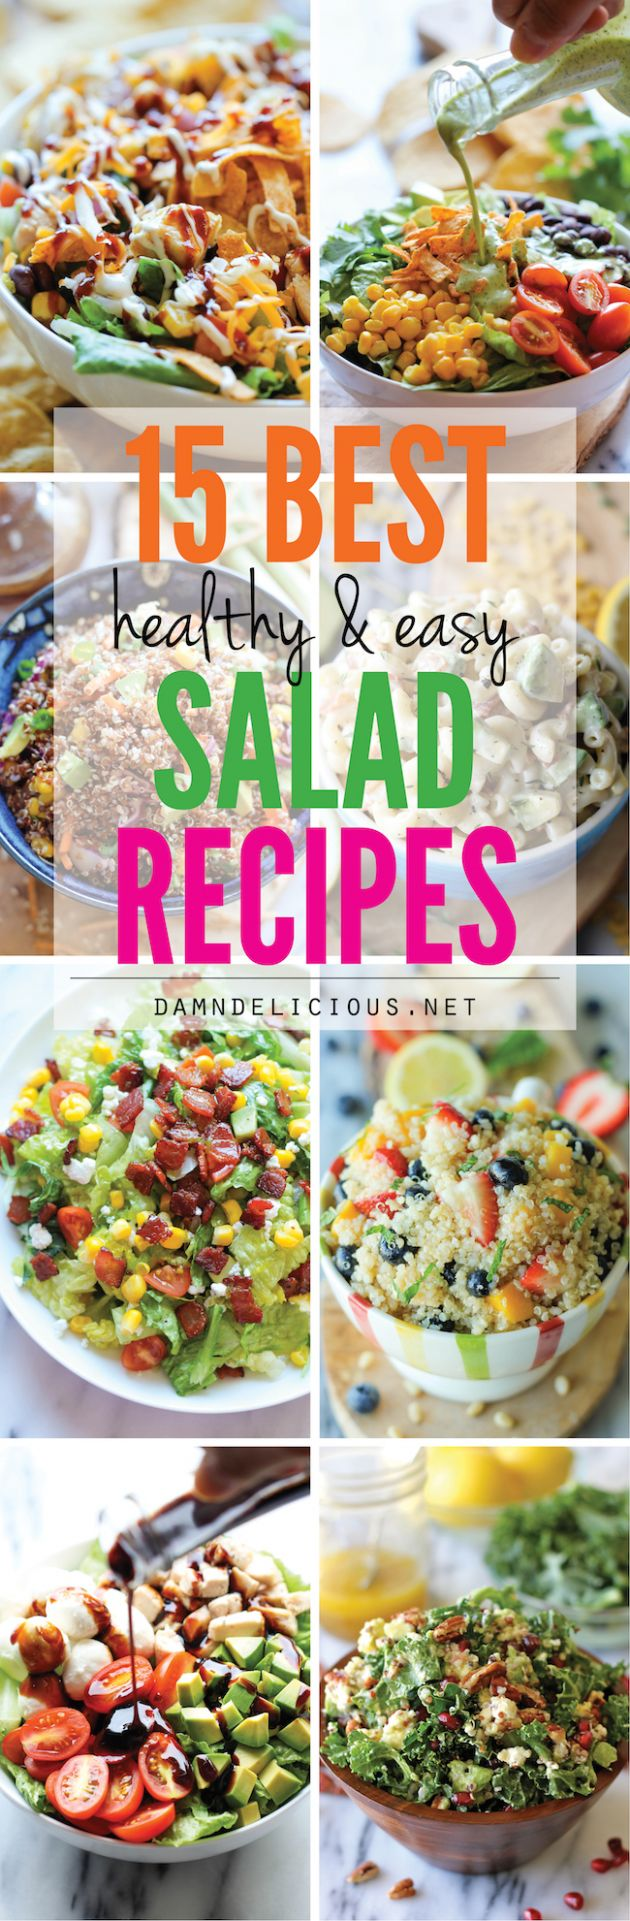 8 Best Healthy and Easy Salad Recipes - Damn Delicious